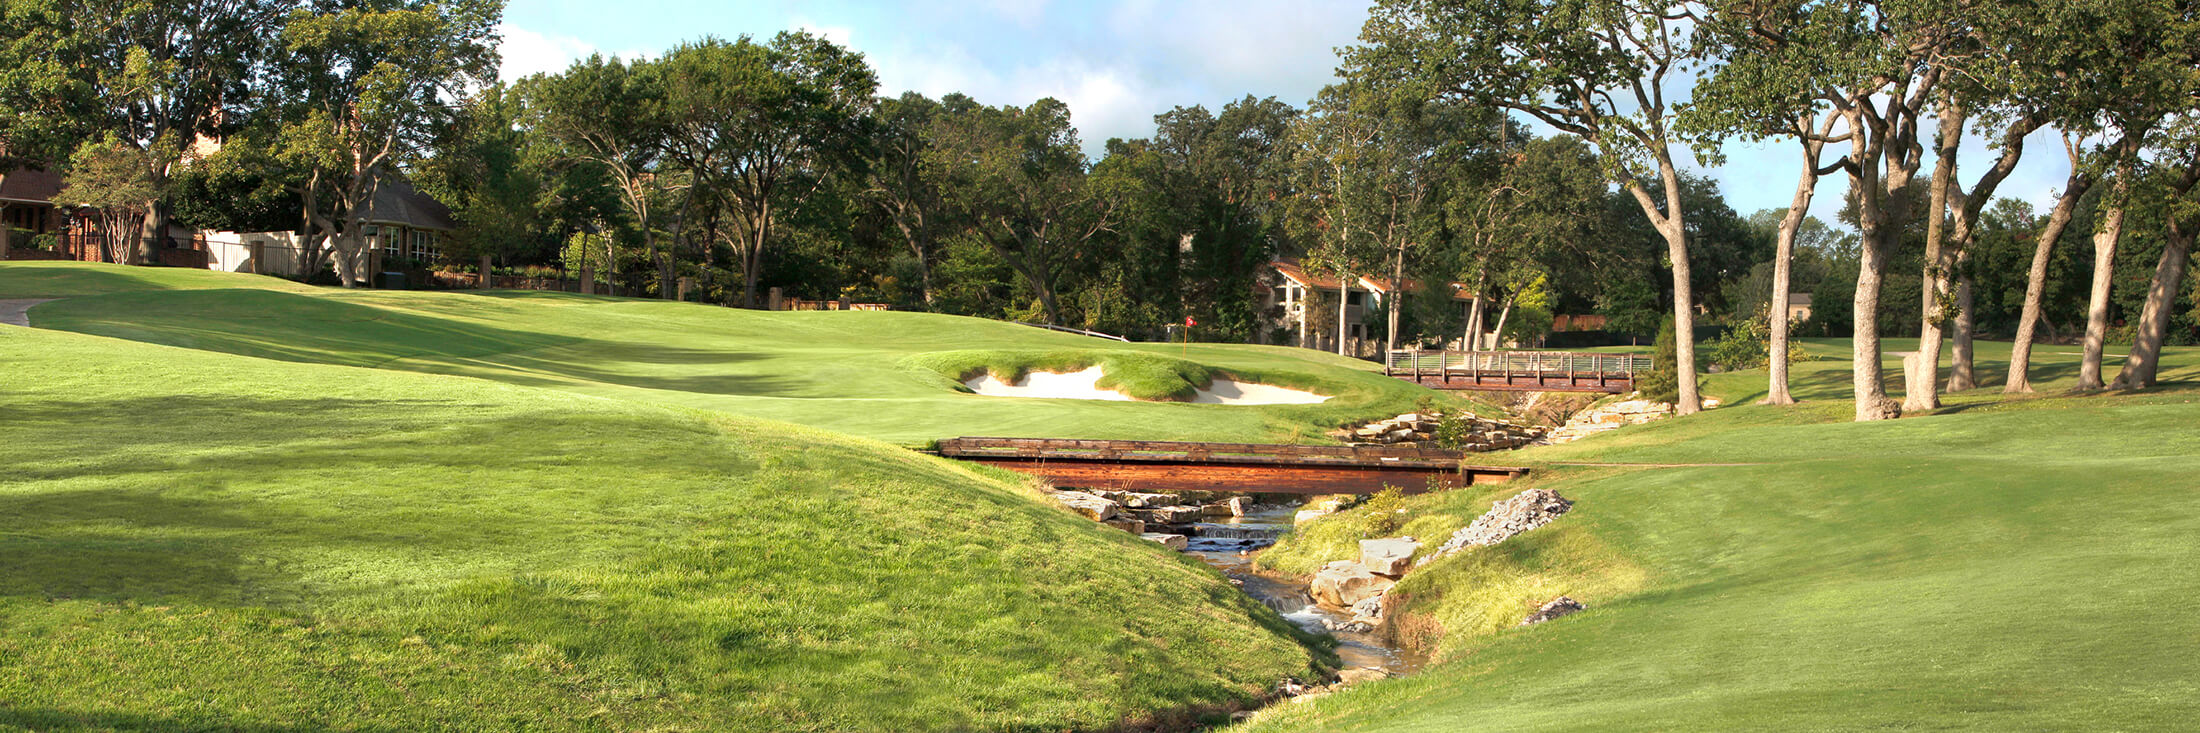 Golf Course Image - Northwood Club No. 10